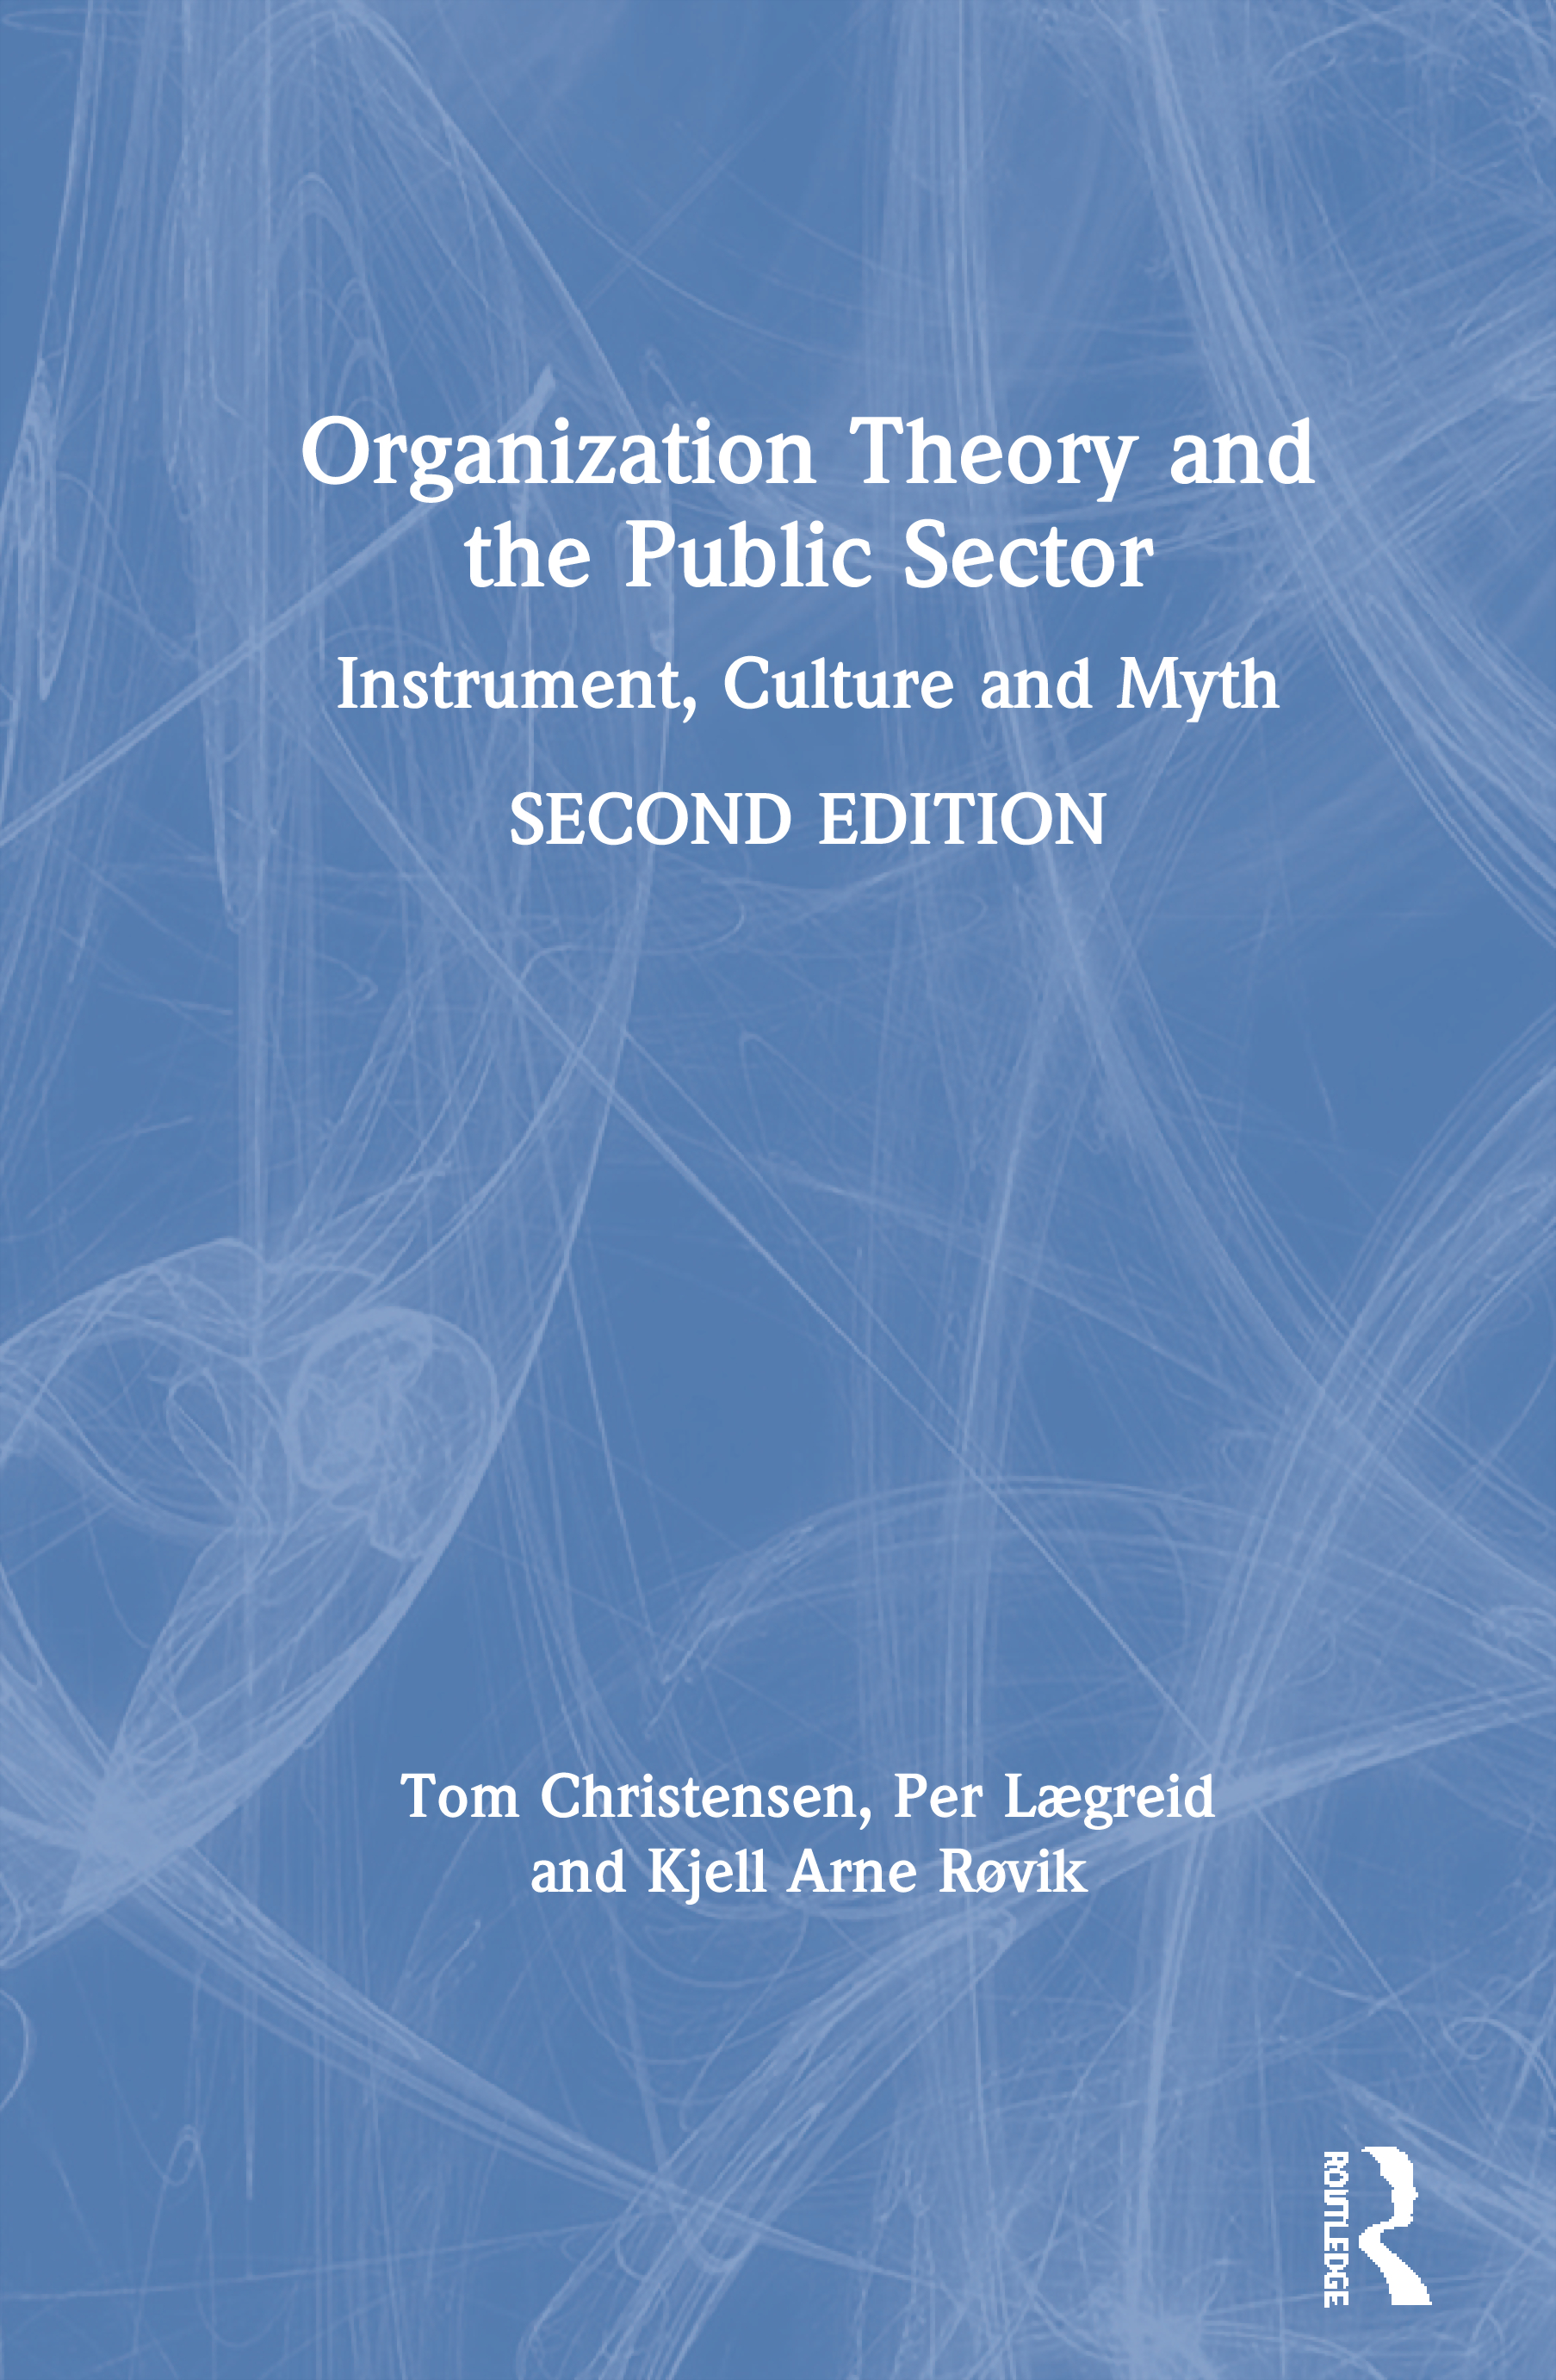 Organization Theory and the Public Sector: Instrument, Culture and Myth book cover